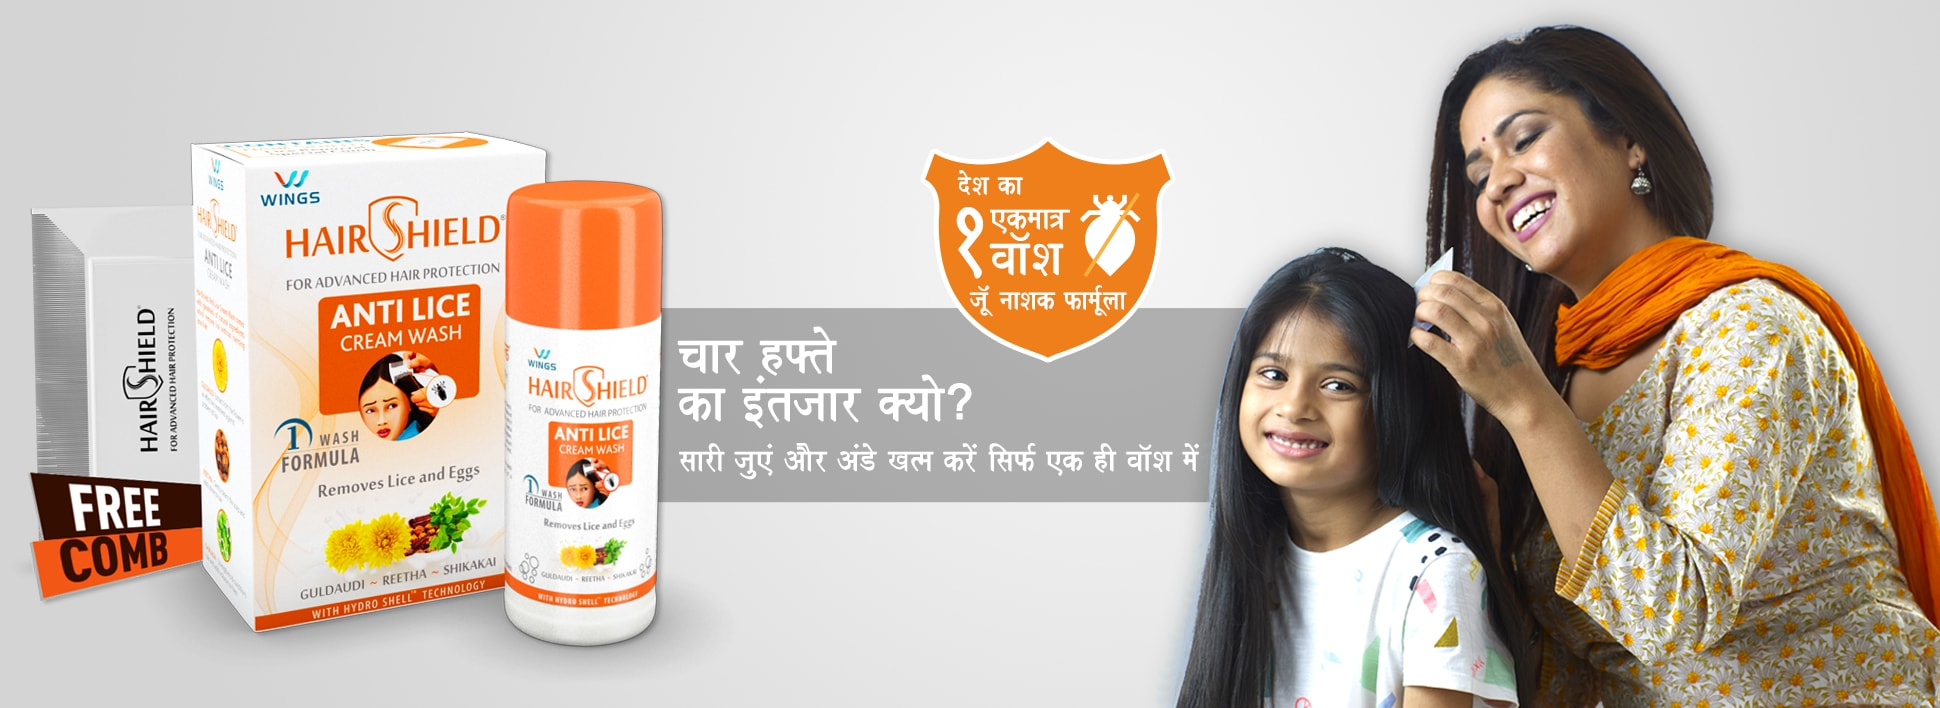 Hairshield India's 1 only wash anti-lice formula | India's No 1 Head Lice Treatment Product